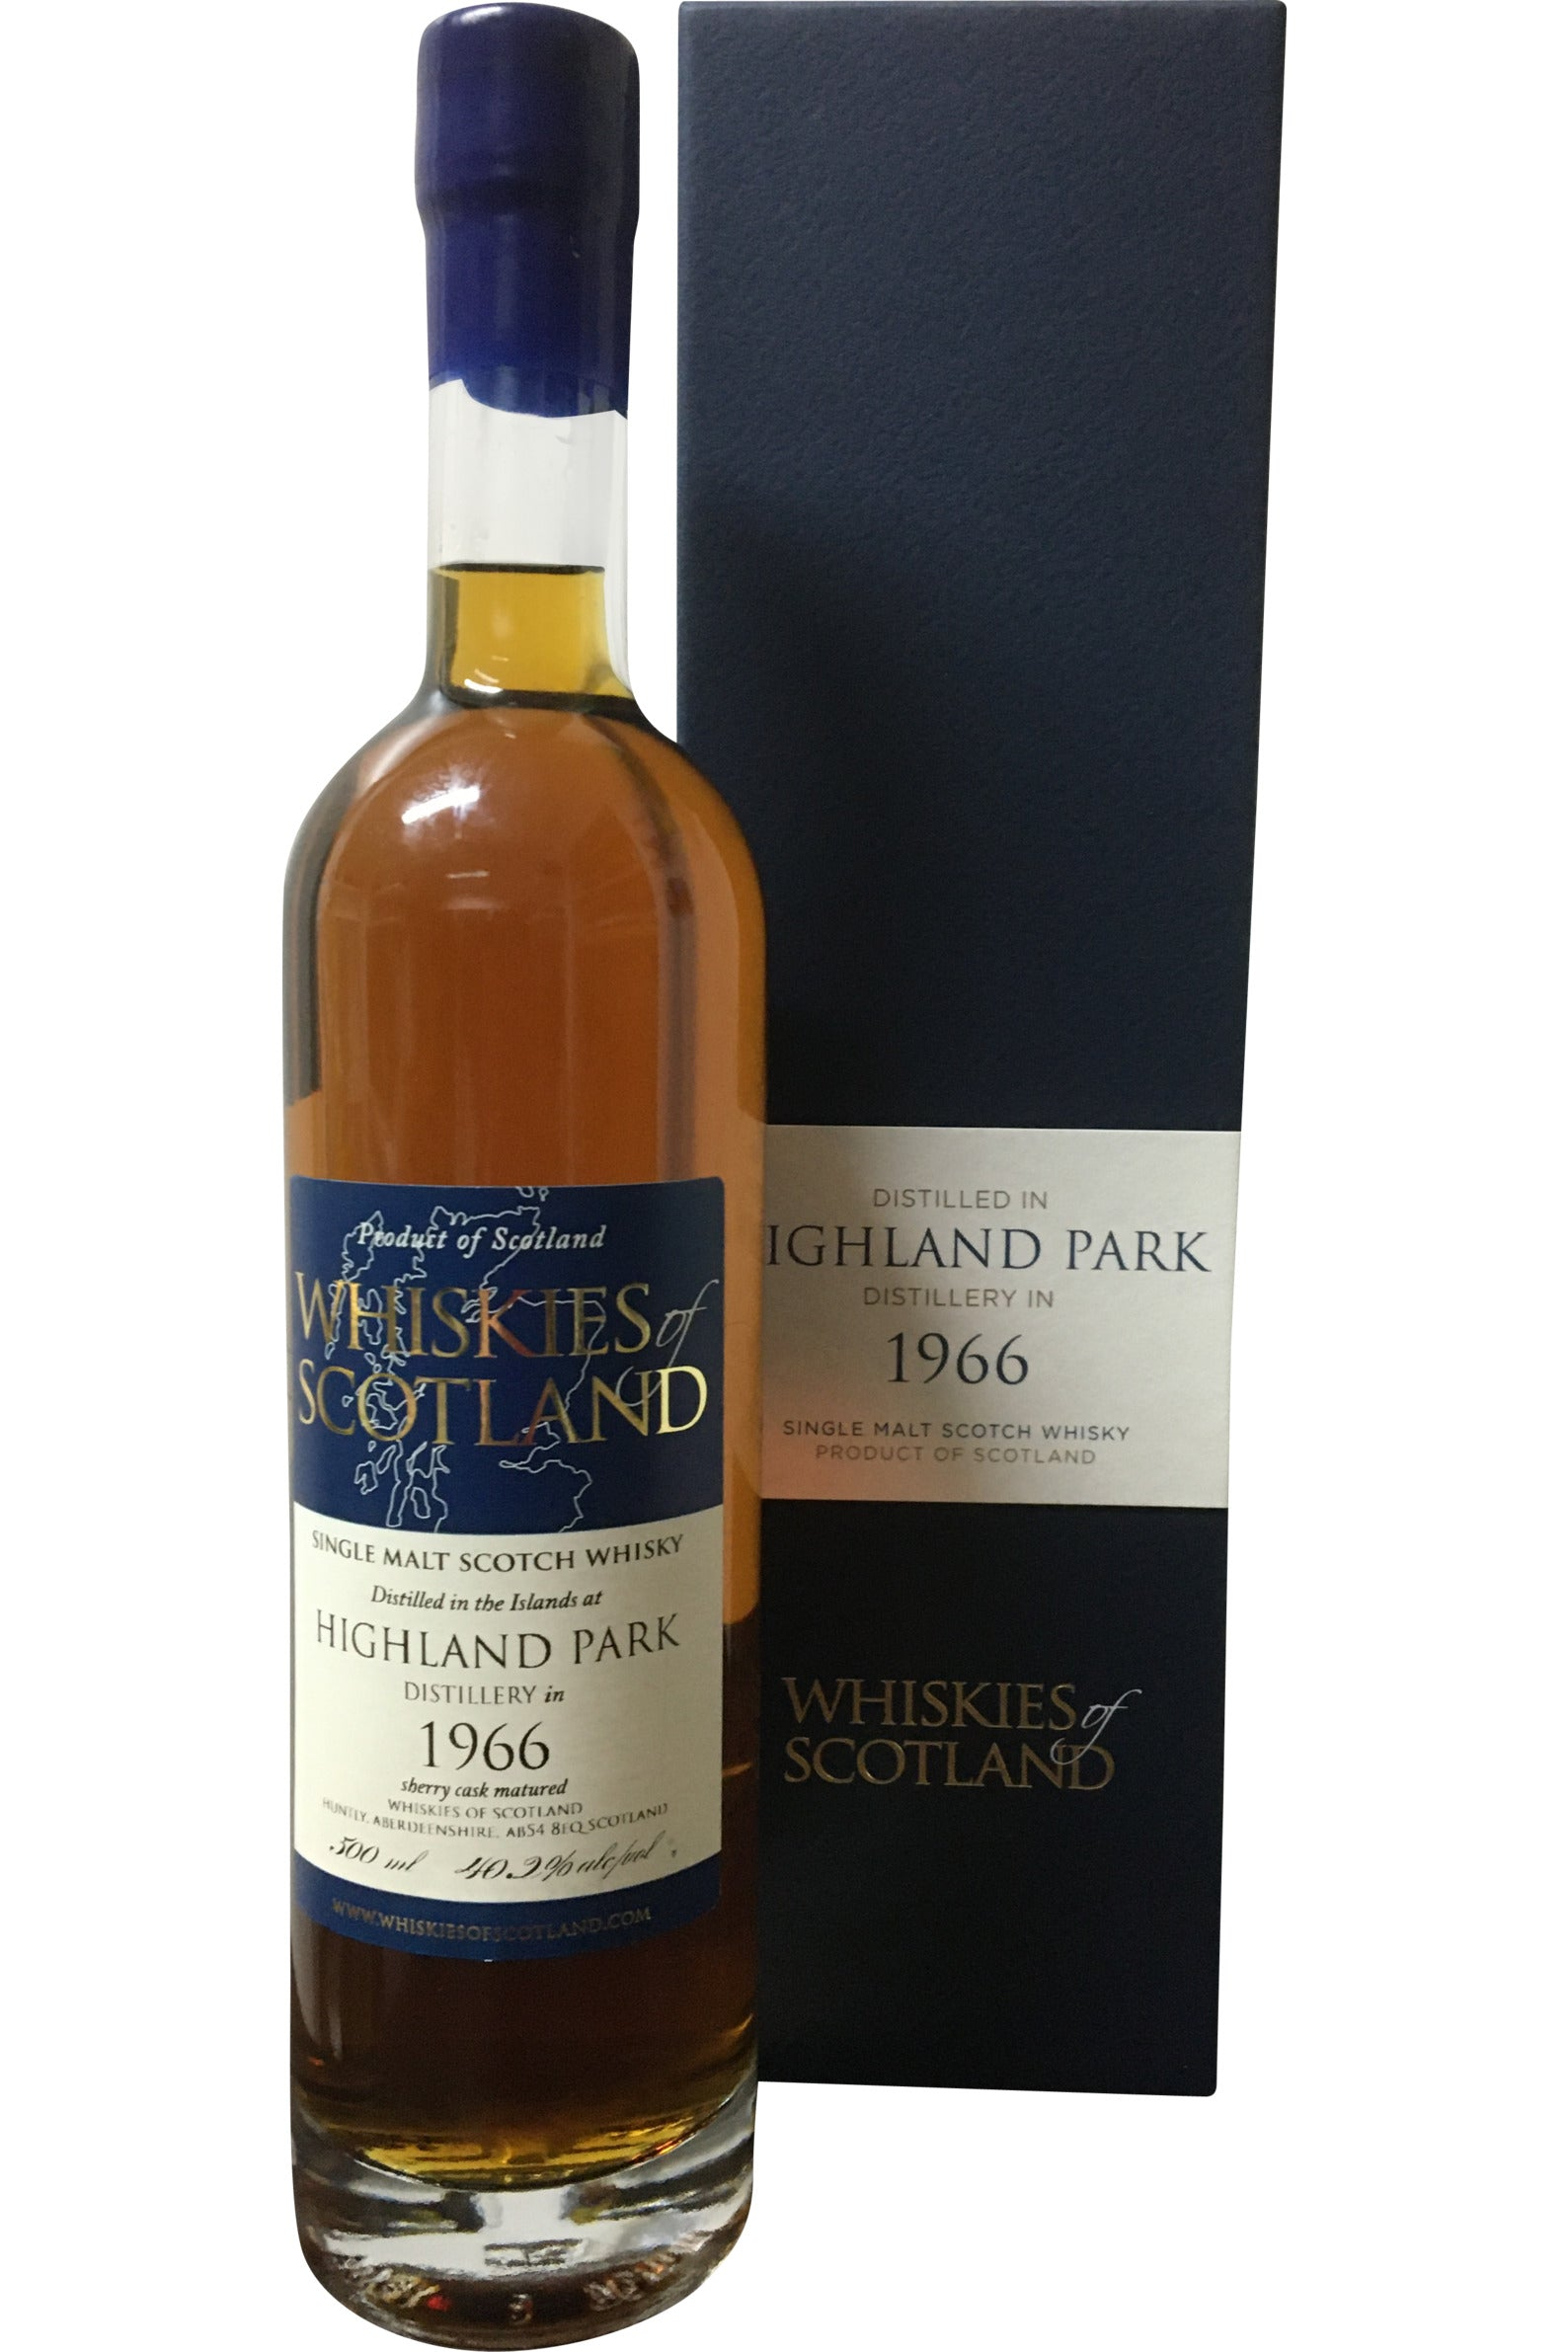 Whiskies of Scotland Highland Park 1966 - 40.2% 500ml - Award Winning